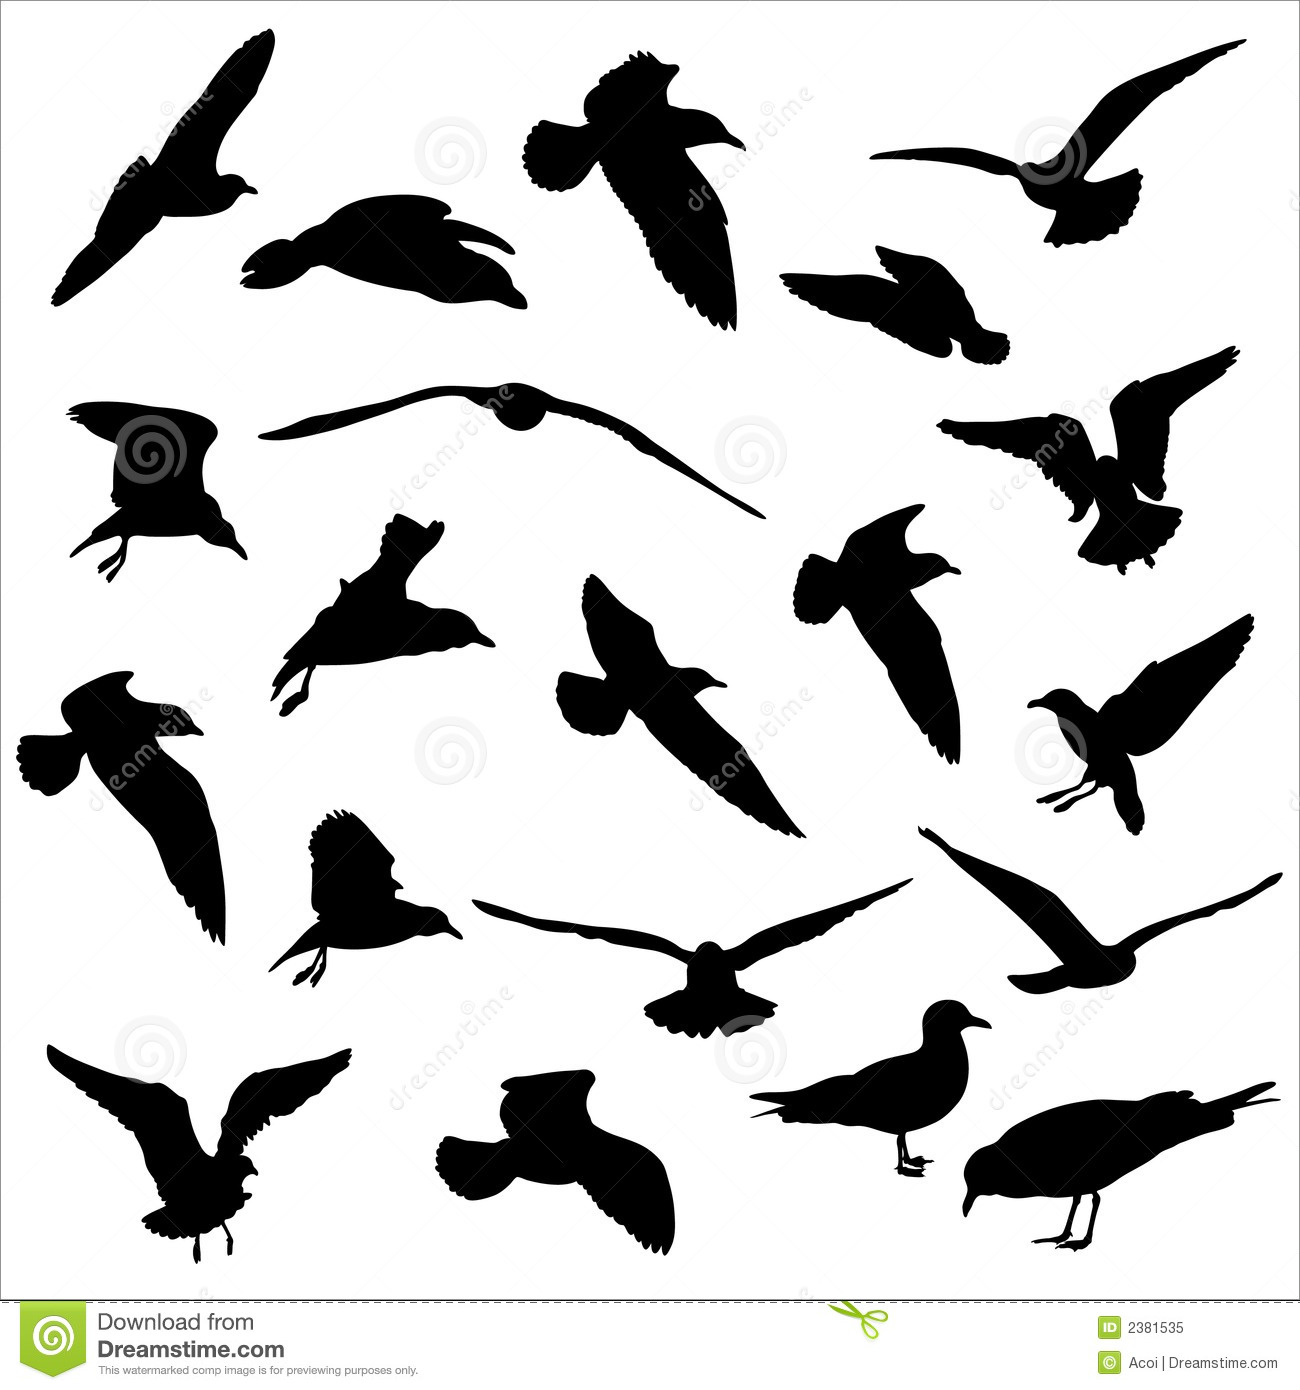 Seagulls Silhouettes Royalty Free Stock Photo  Image 2381535